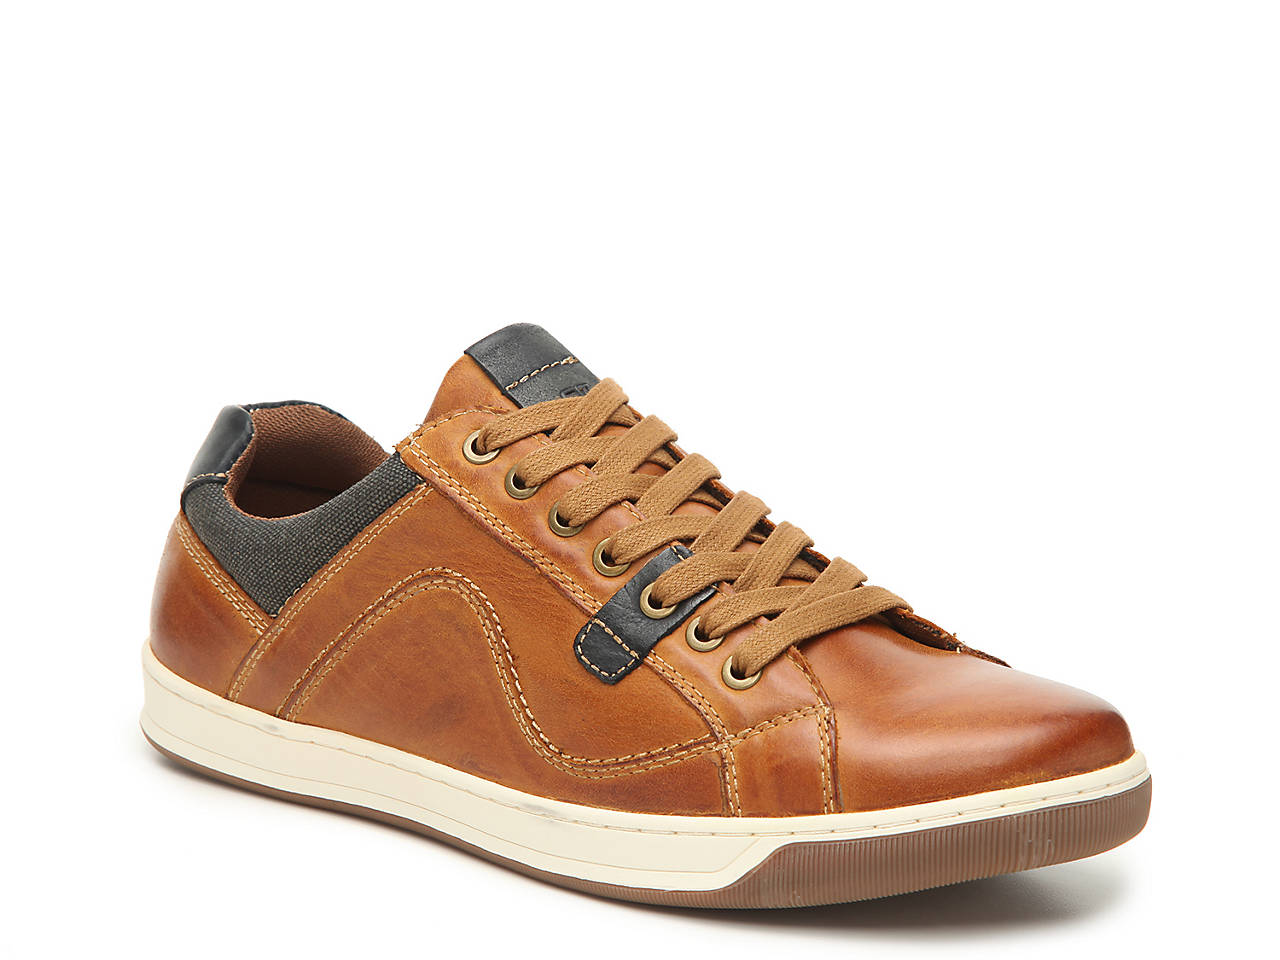 25786023ef4 Steve Madden Charter Sneaker Men s Shoes